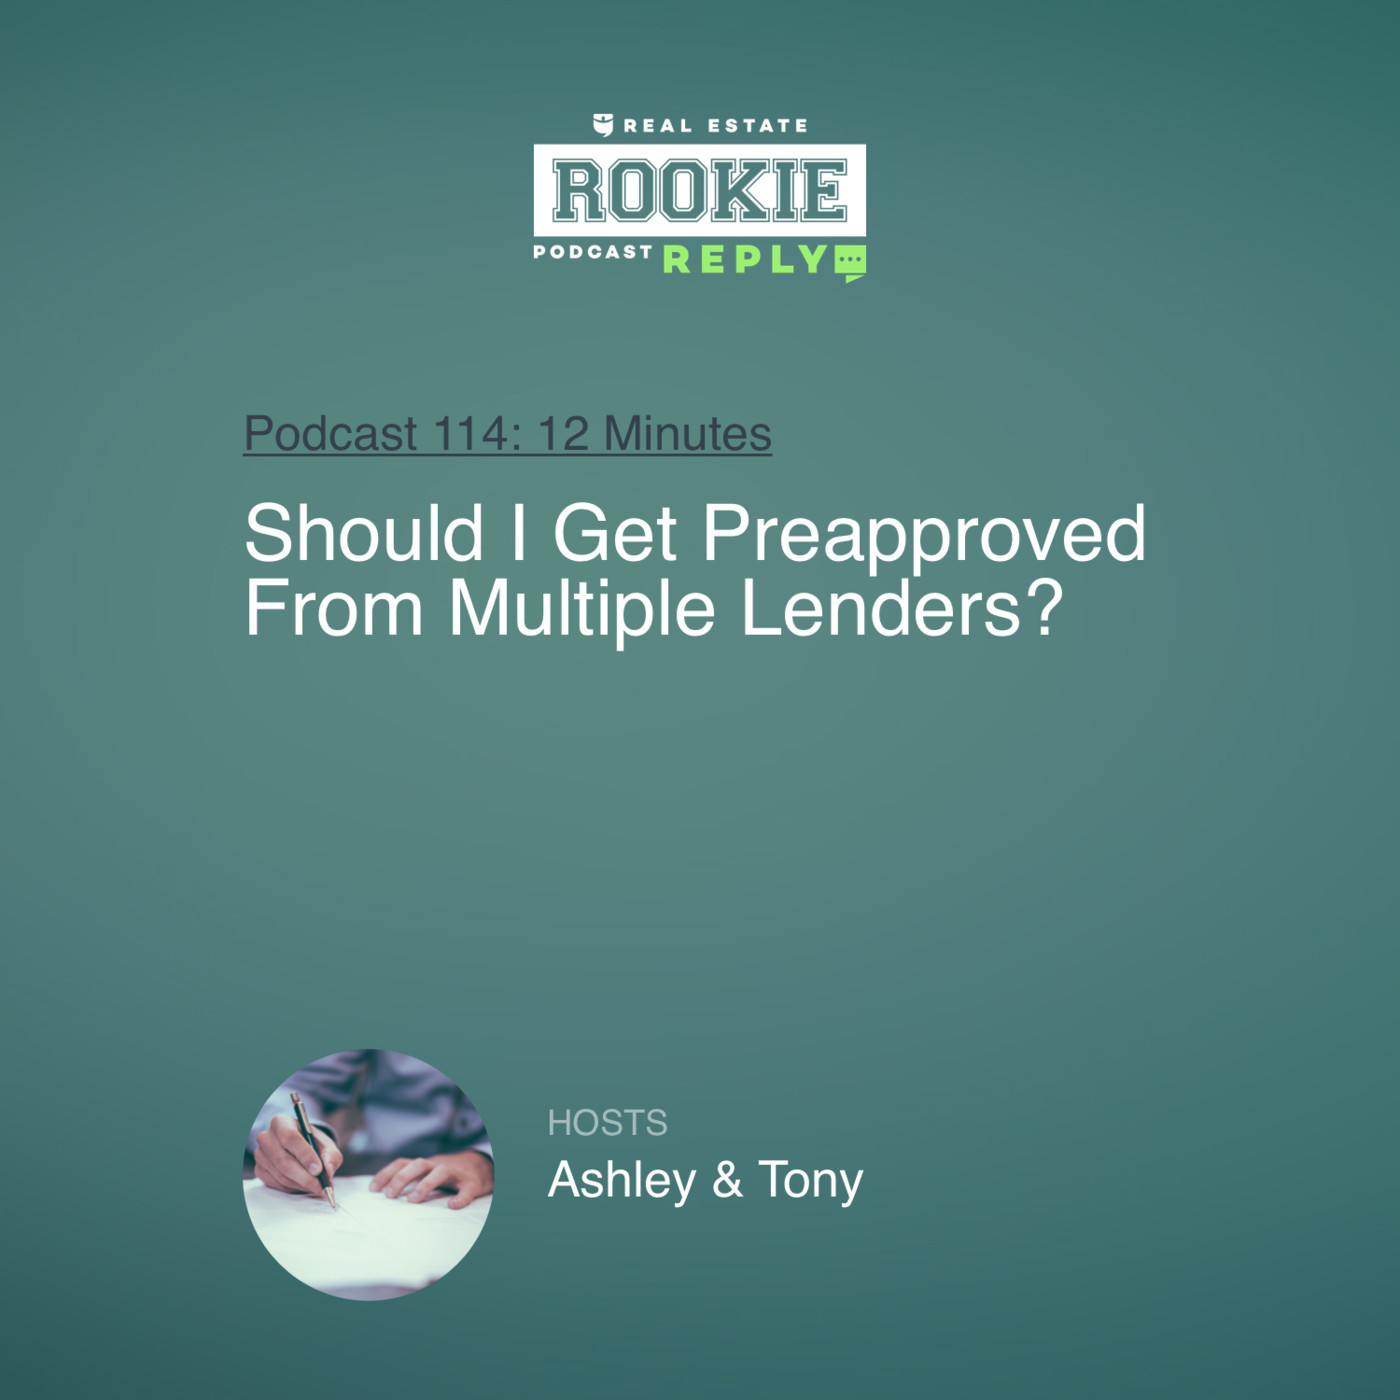 Rookie Reply: Should I Get Preapproved From Multiple Lenders?